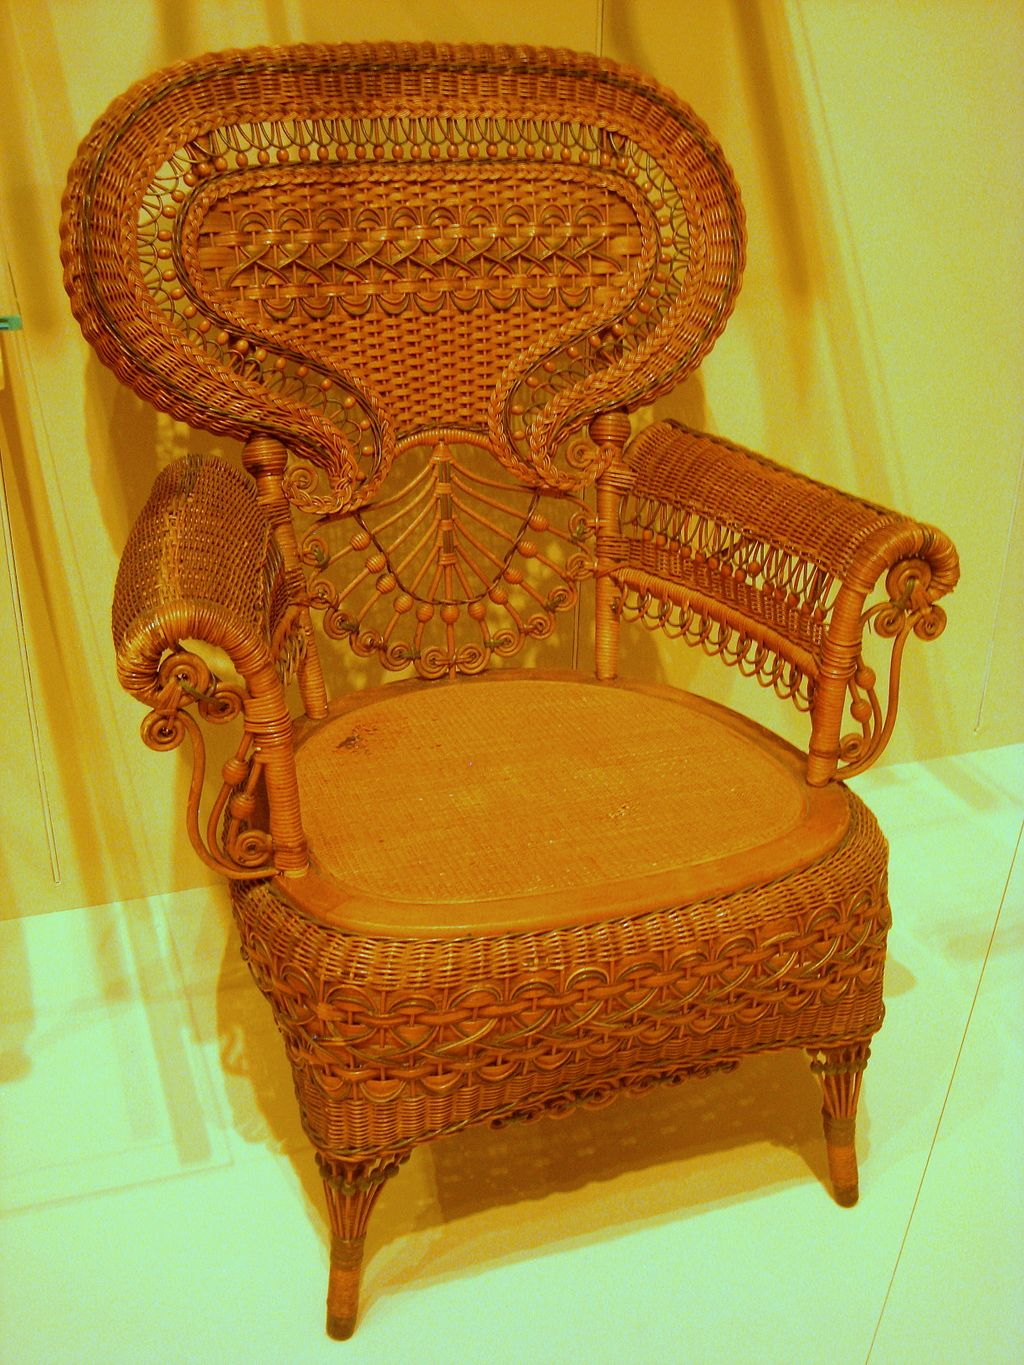 A Heywood Brother's Armchair c.1885. This was the Victorian version of easy-breezy/casual.